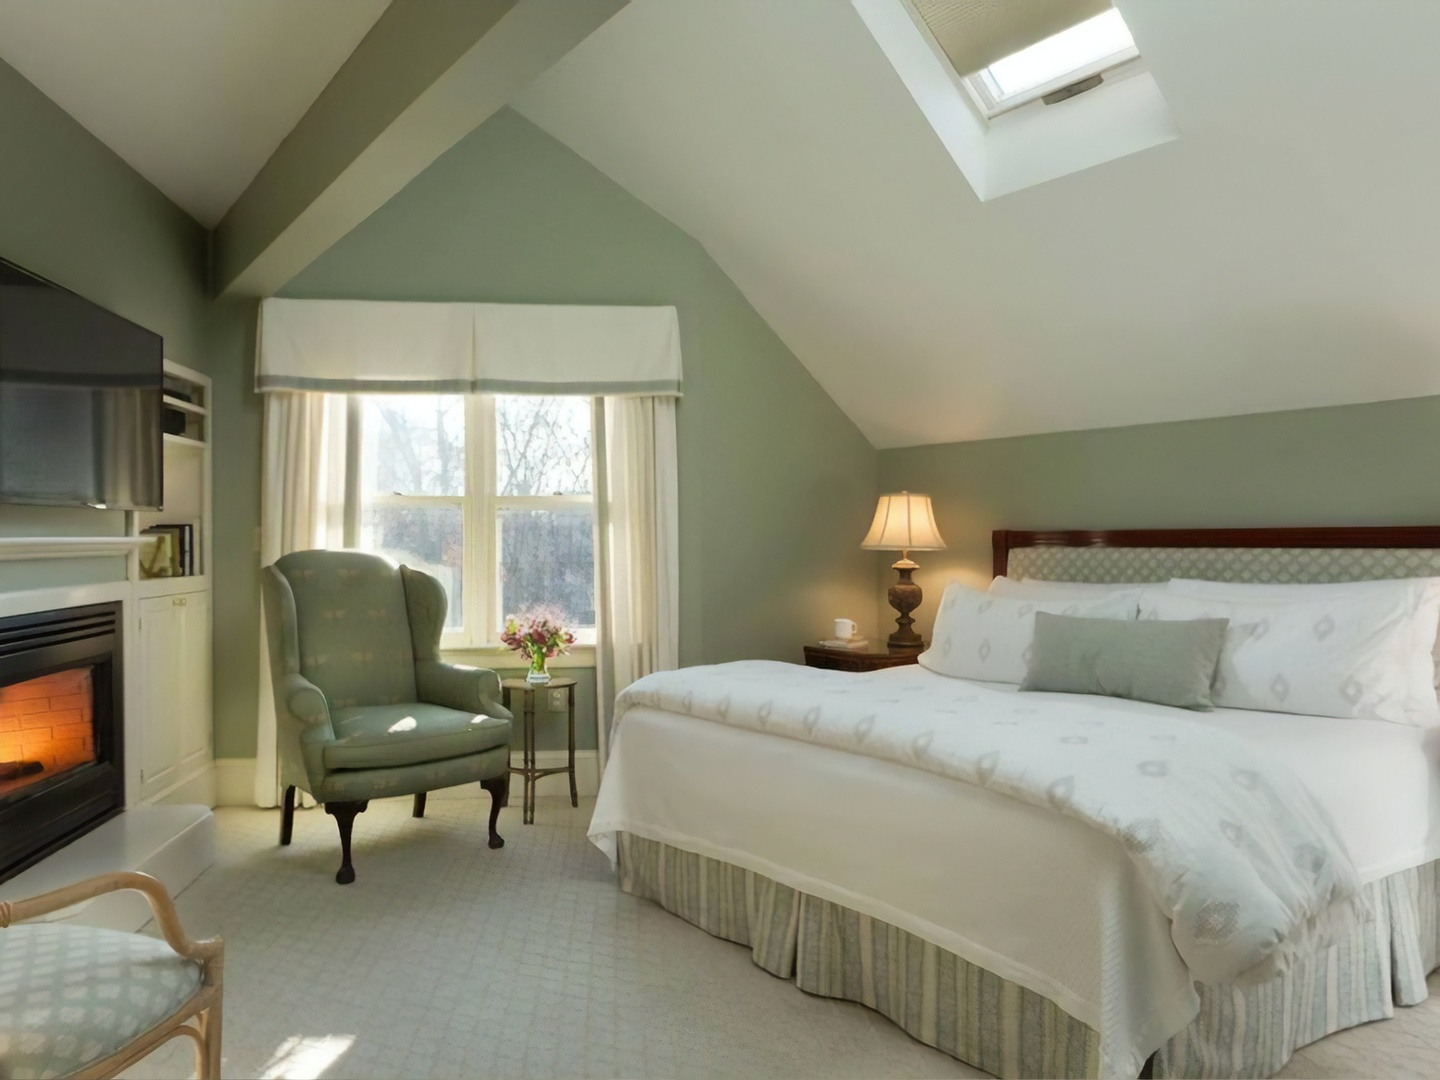 A bedroom with a large bed in a hotel room at Harbor Light Inn.